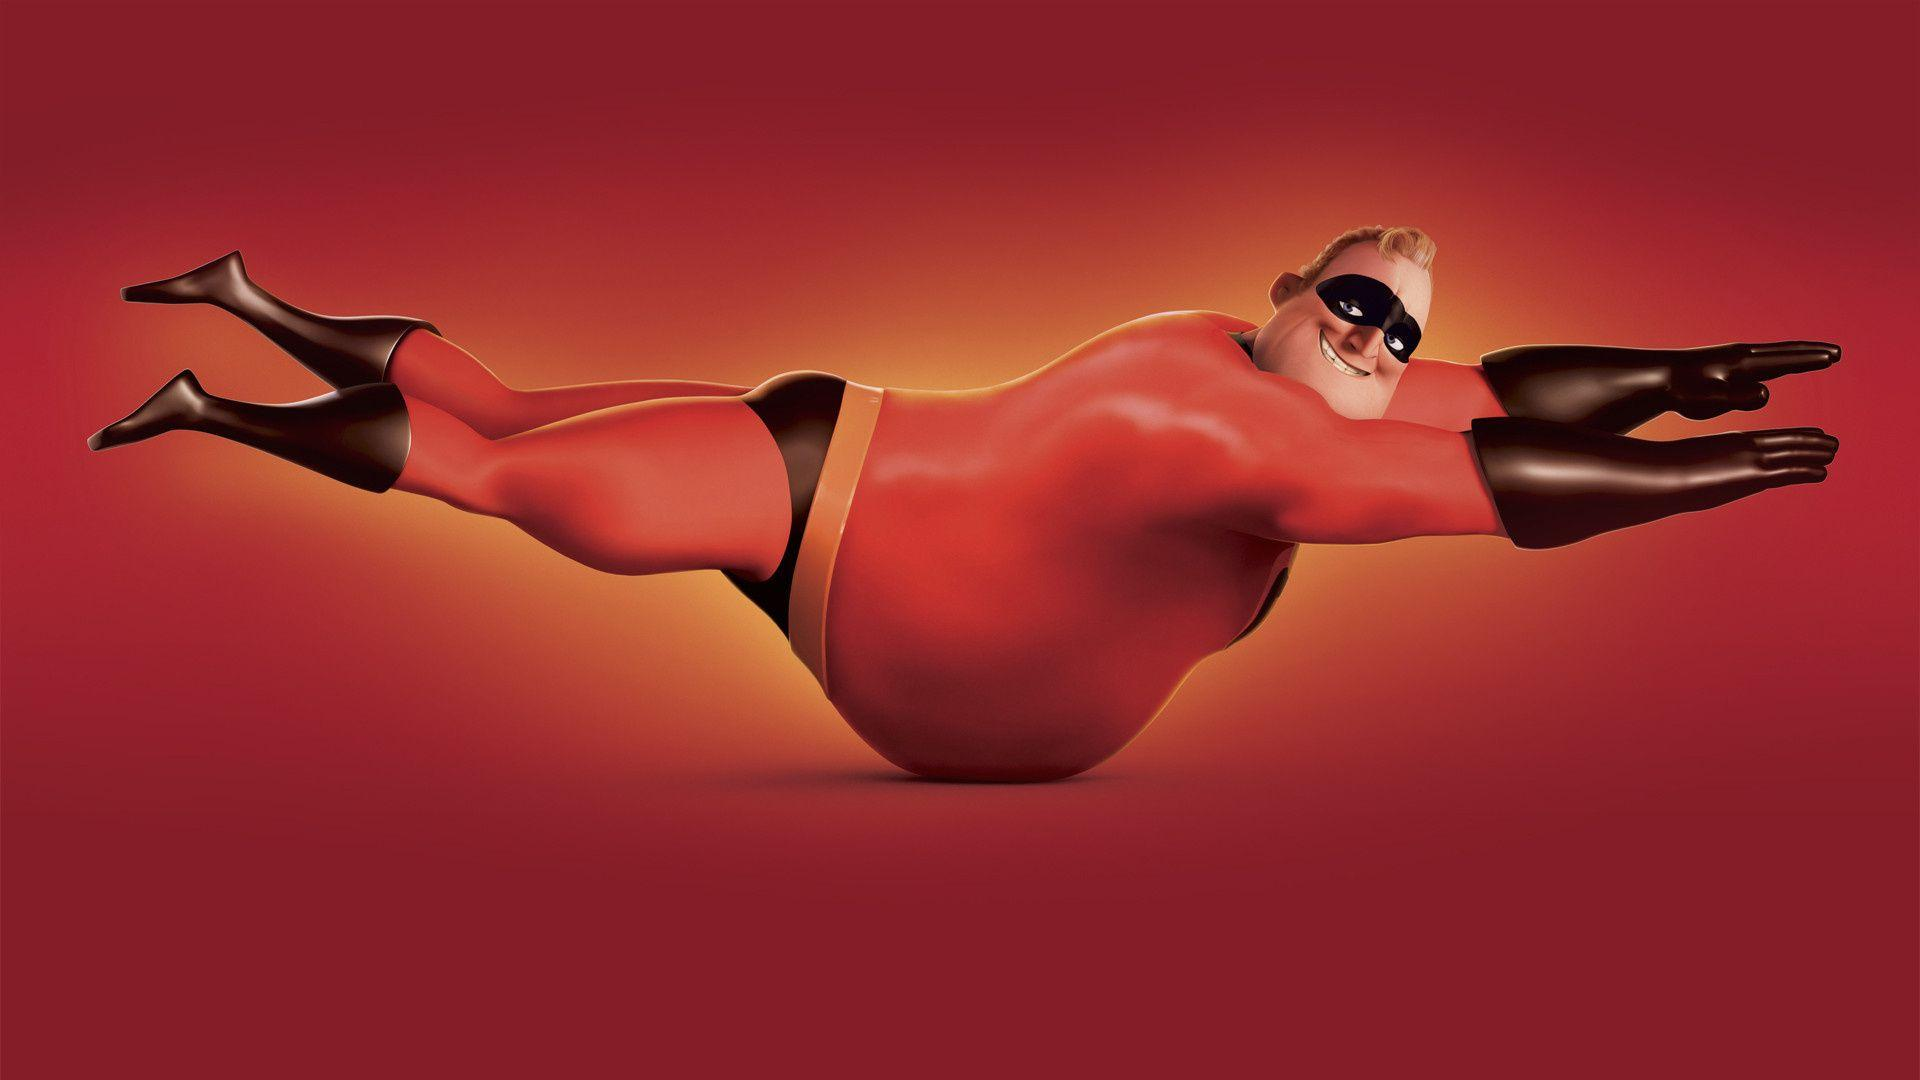 Incredibles online